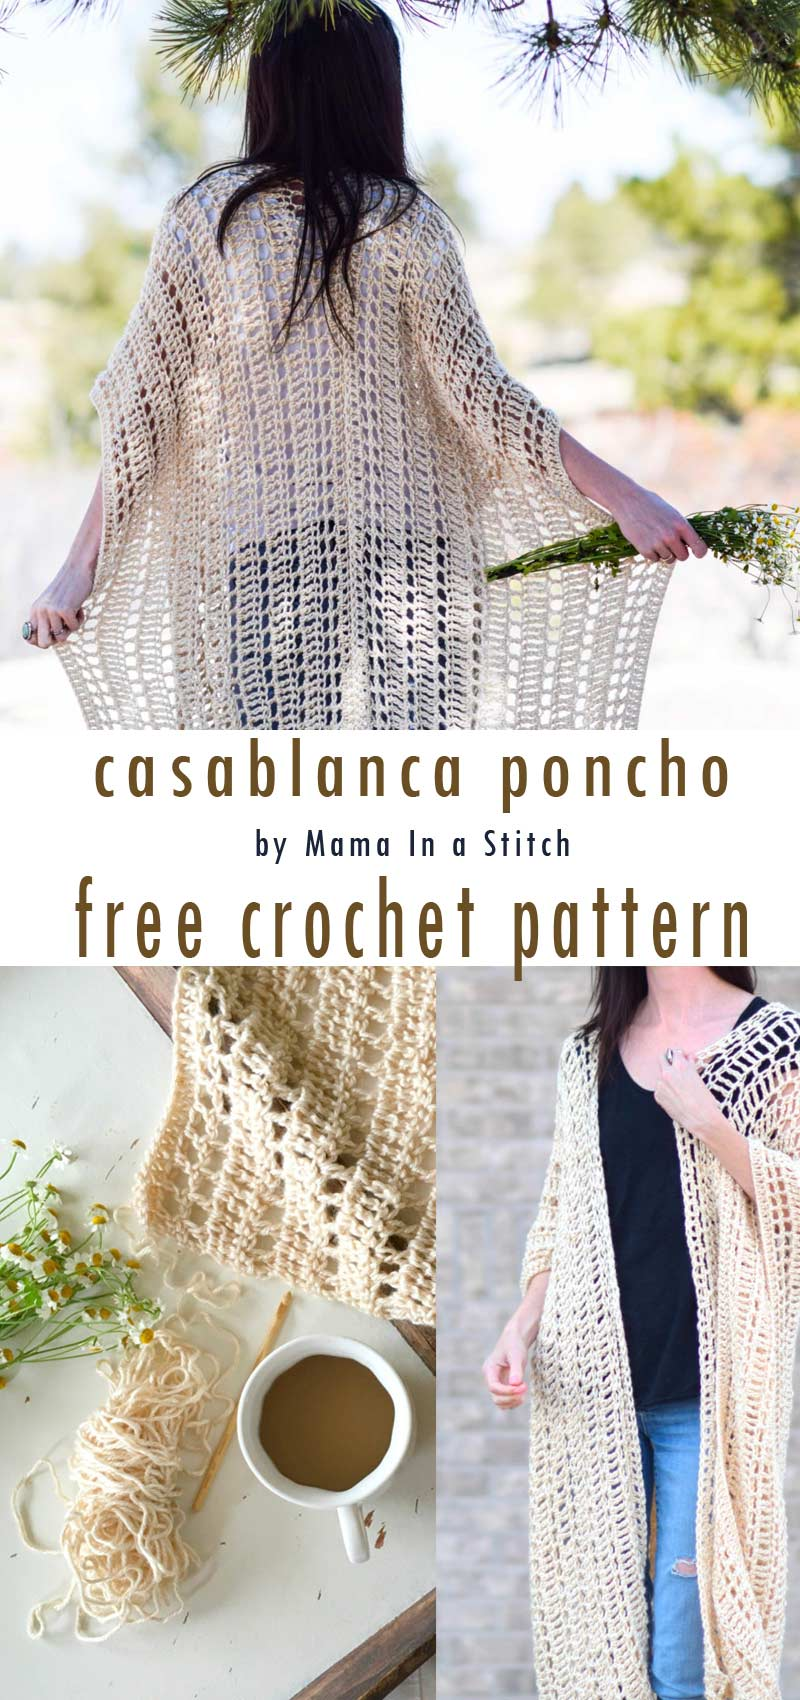 easy crochet projects for spring and summer by craft-mart.com - crochet poncho with free pattern